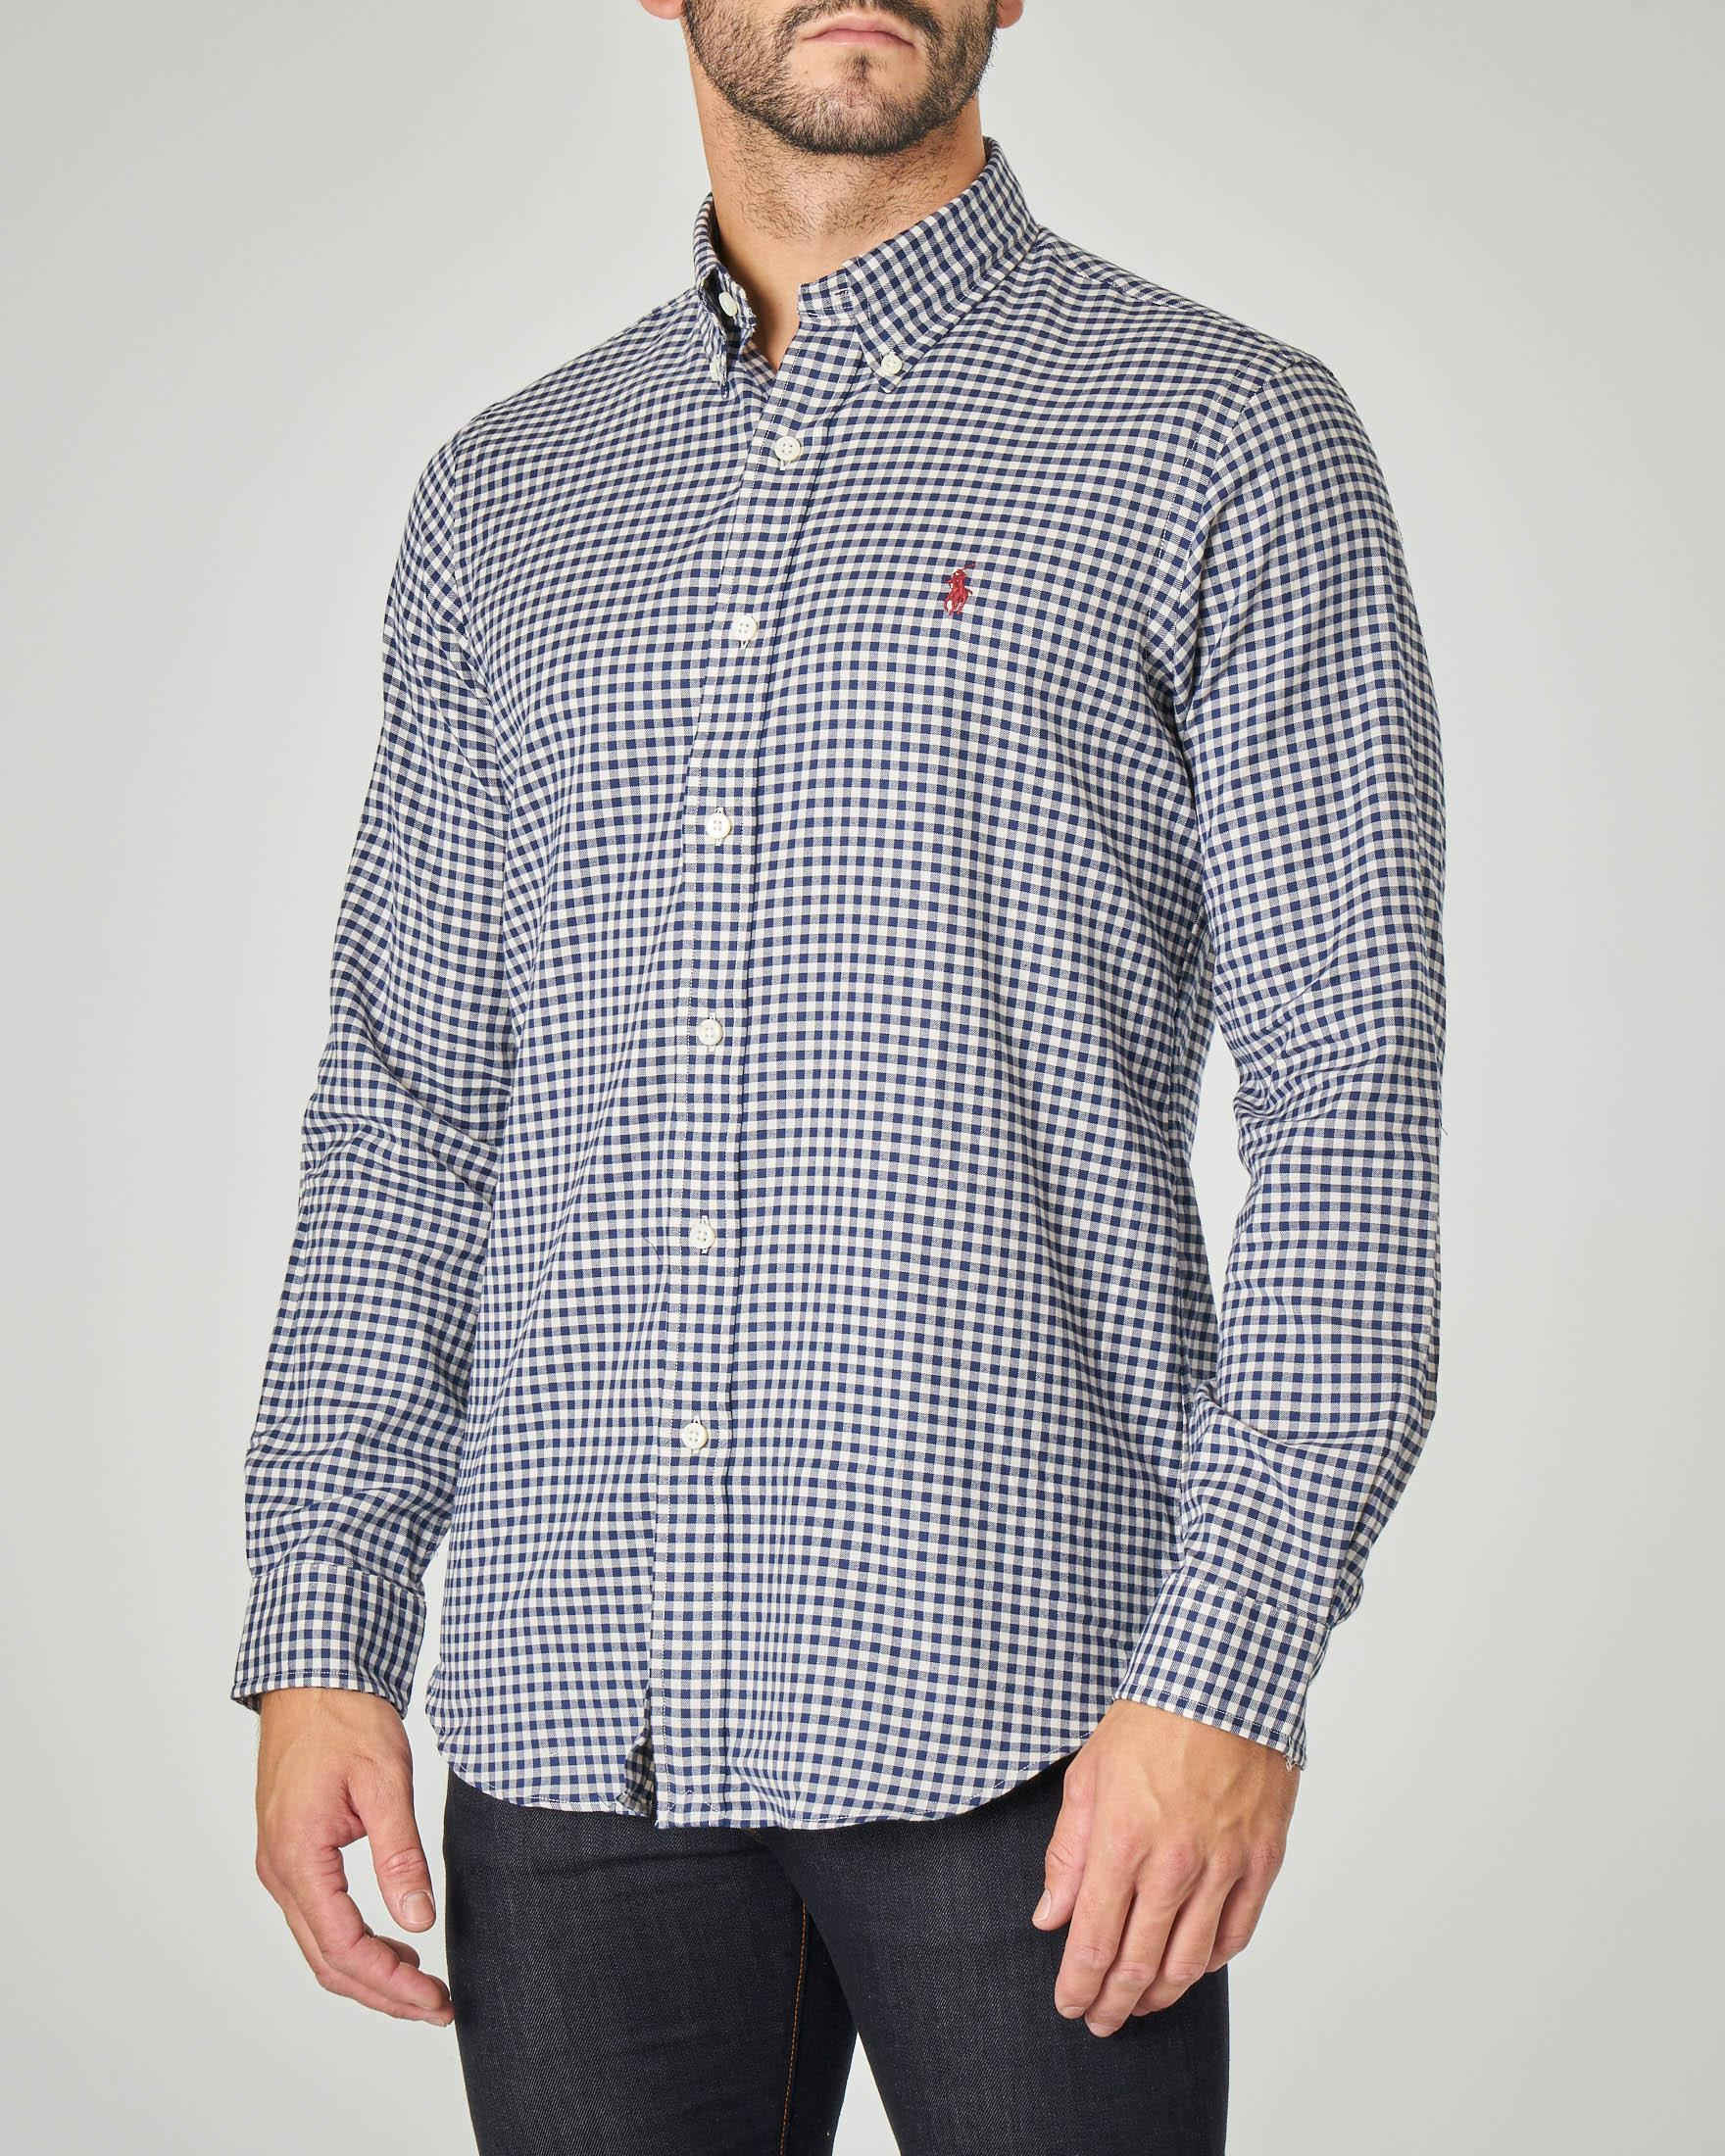 Camicia a quadretti bianchi e blu con collo button down